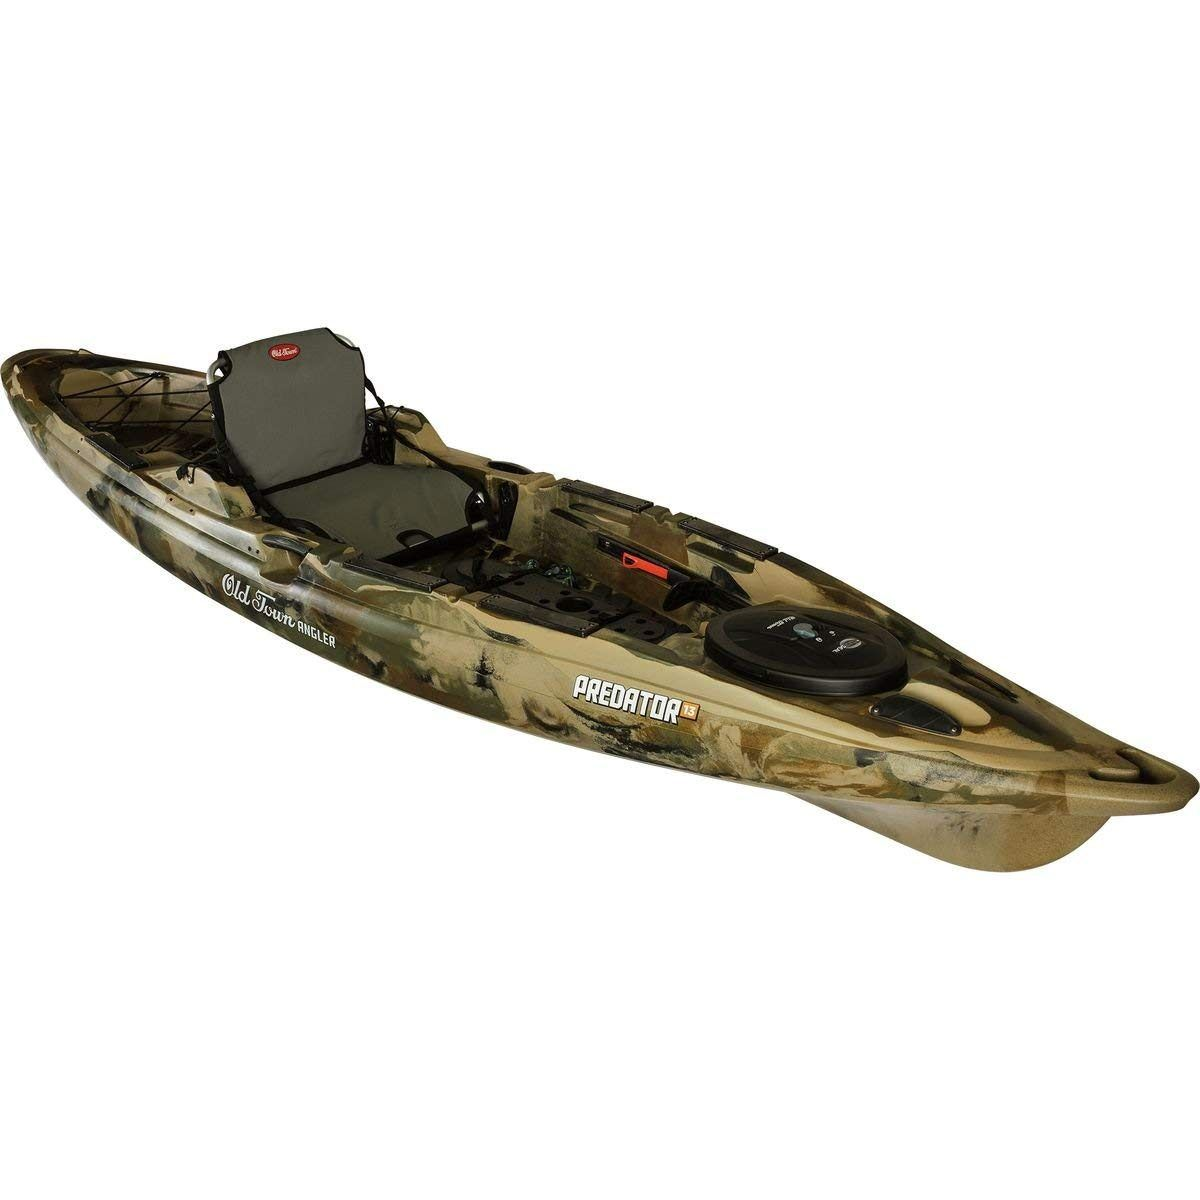 old_town_predator_13_kayak_brown_camo-3707986